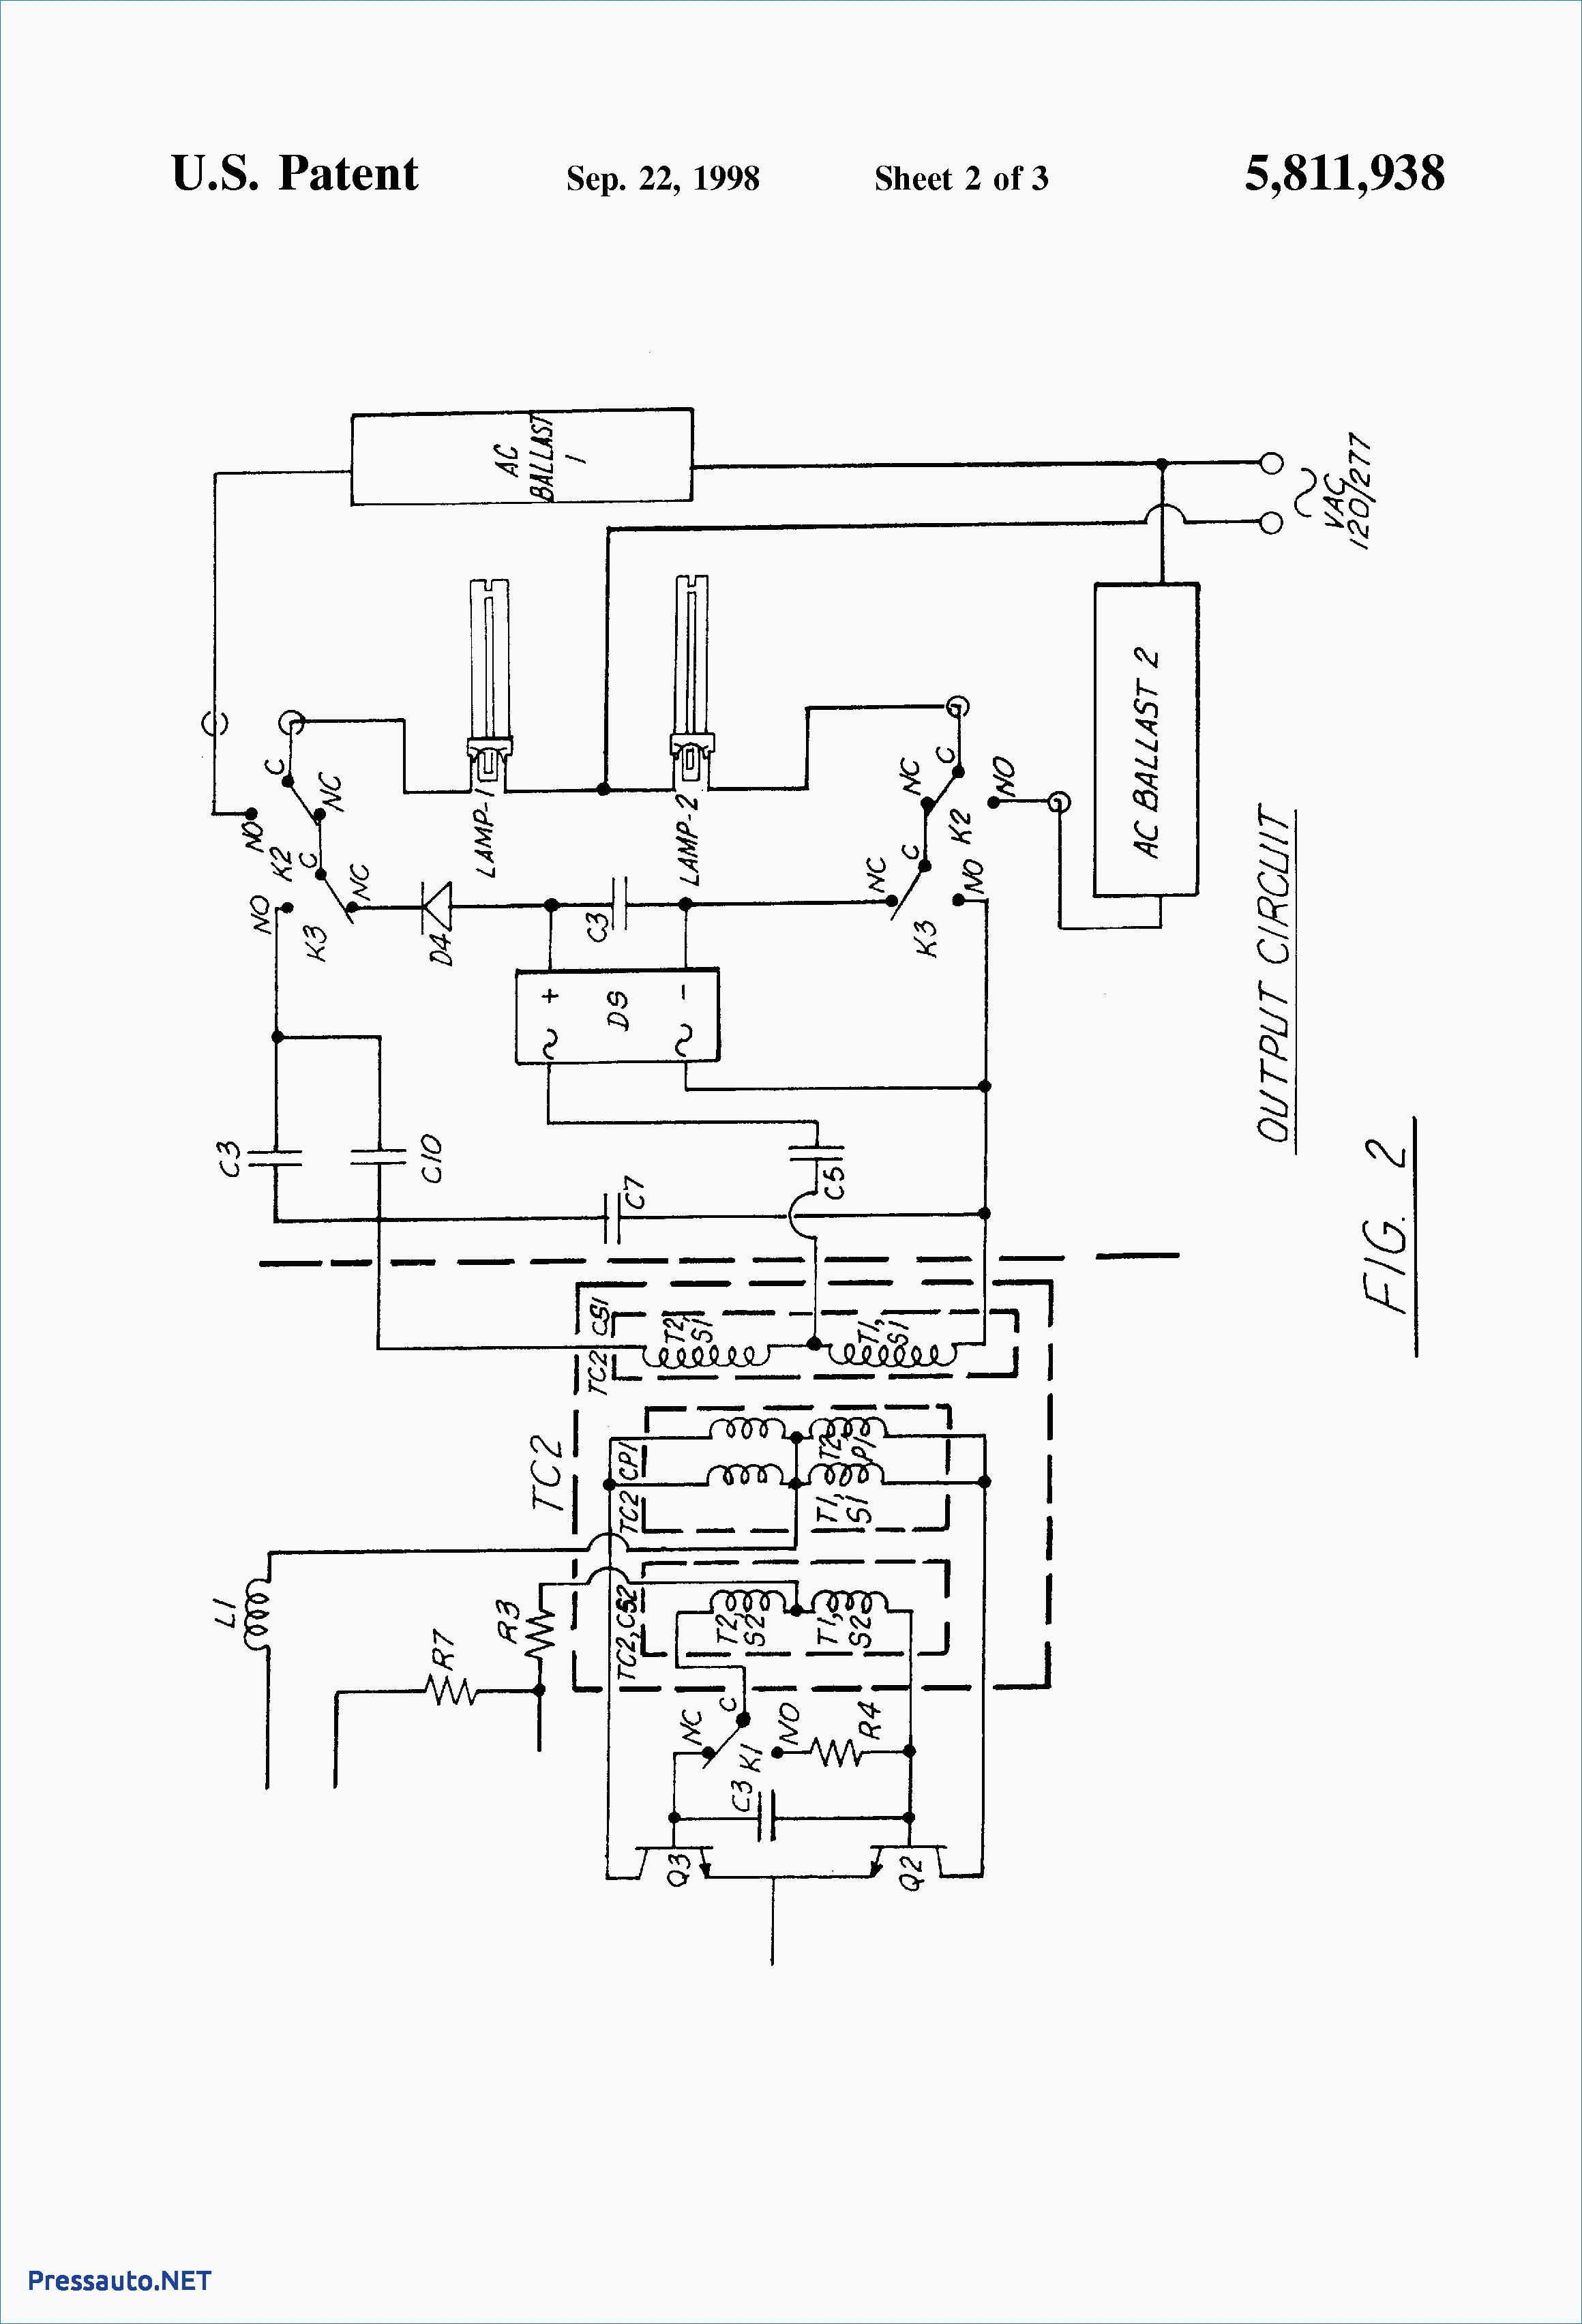 A Ff75 Lights Wiring Diagram